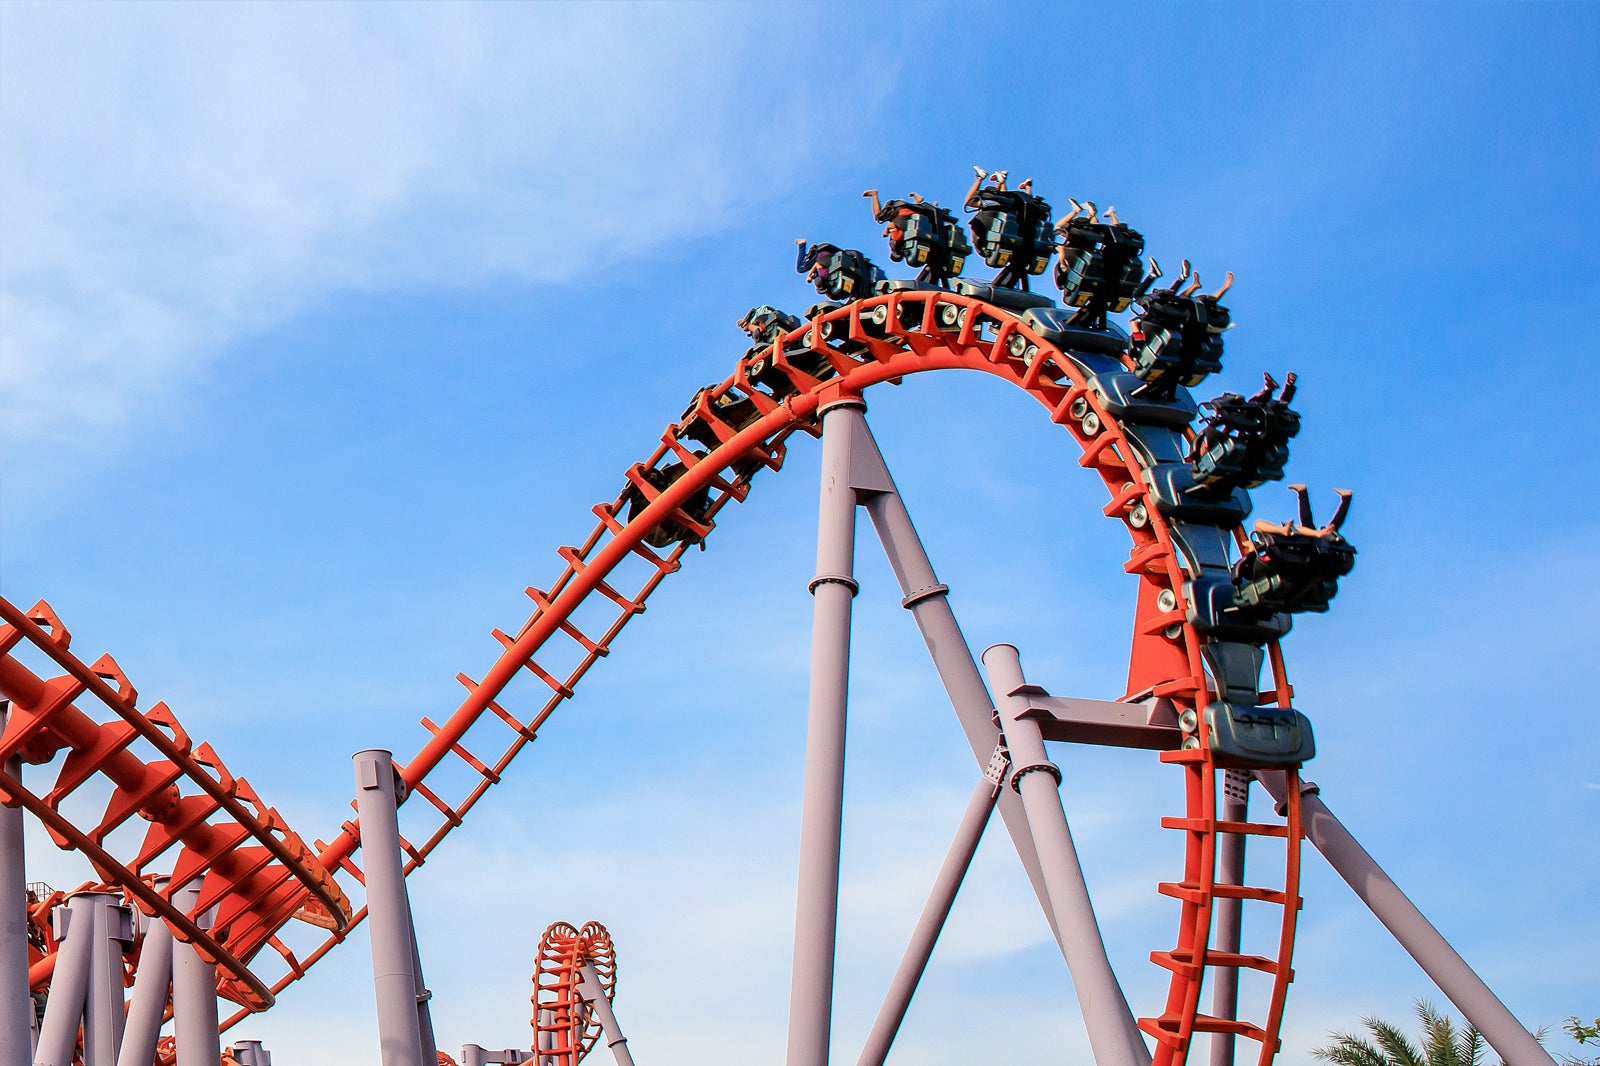 10 Best Theme Parks In Bangkok Find Family Fun At Bangkok S Amusement Parks And Water Parks Go Guides